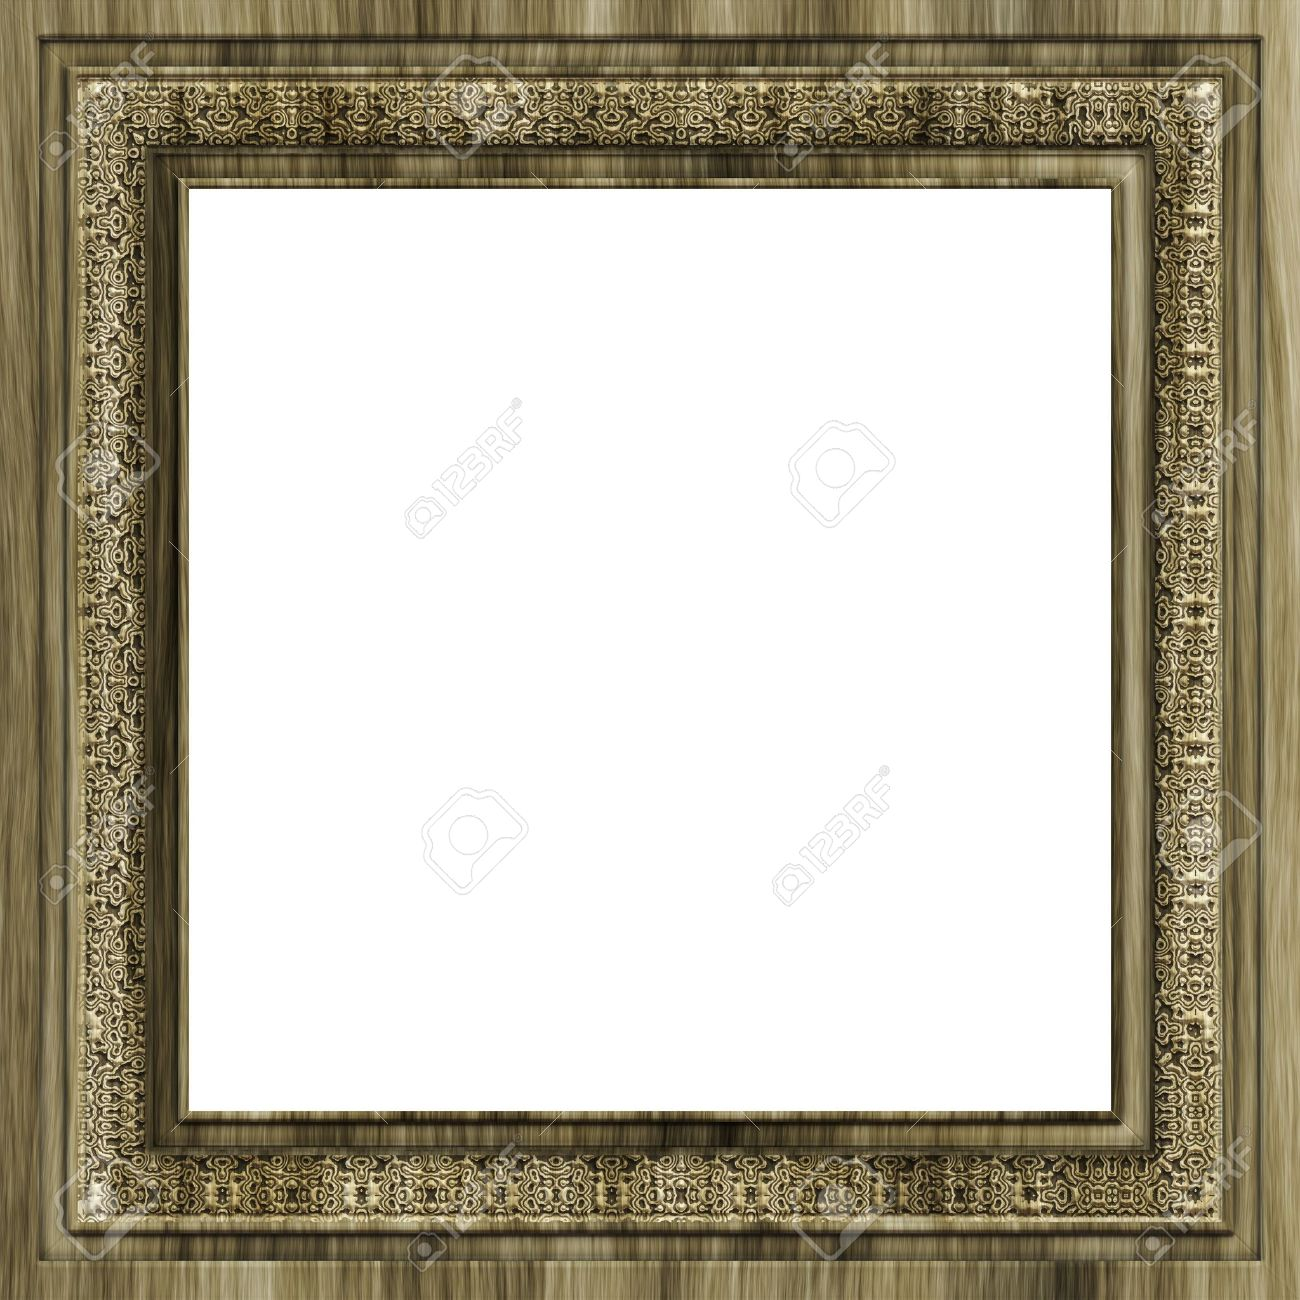 An Illustration Of A Square Wooden Frame Stock Photo, Picture And ...